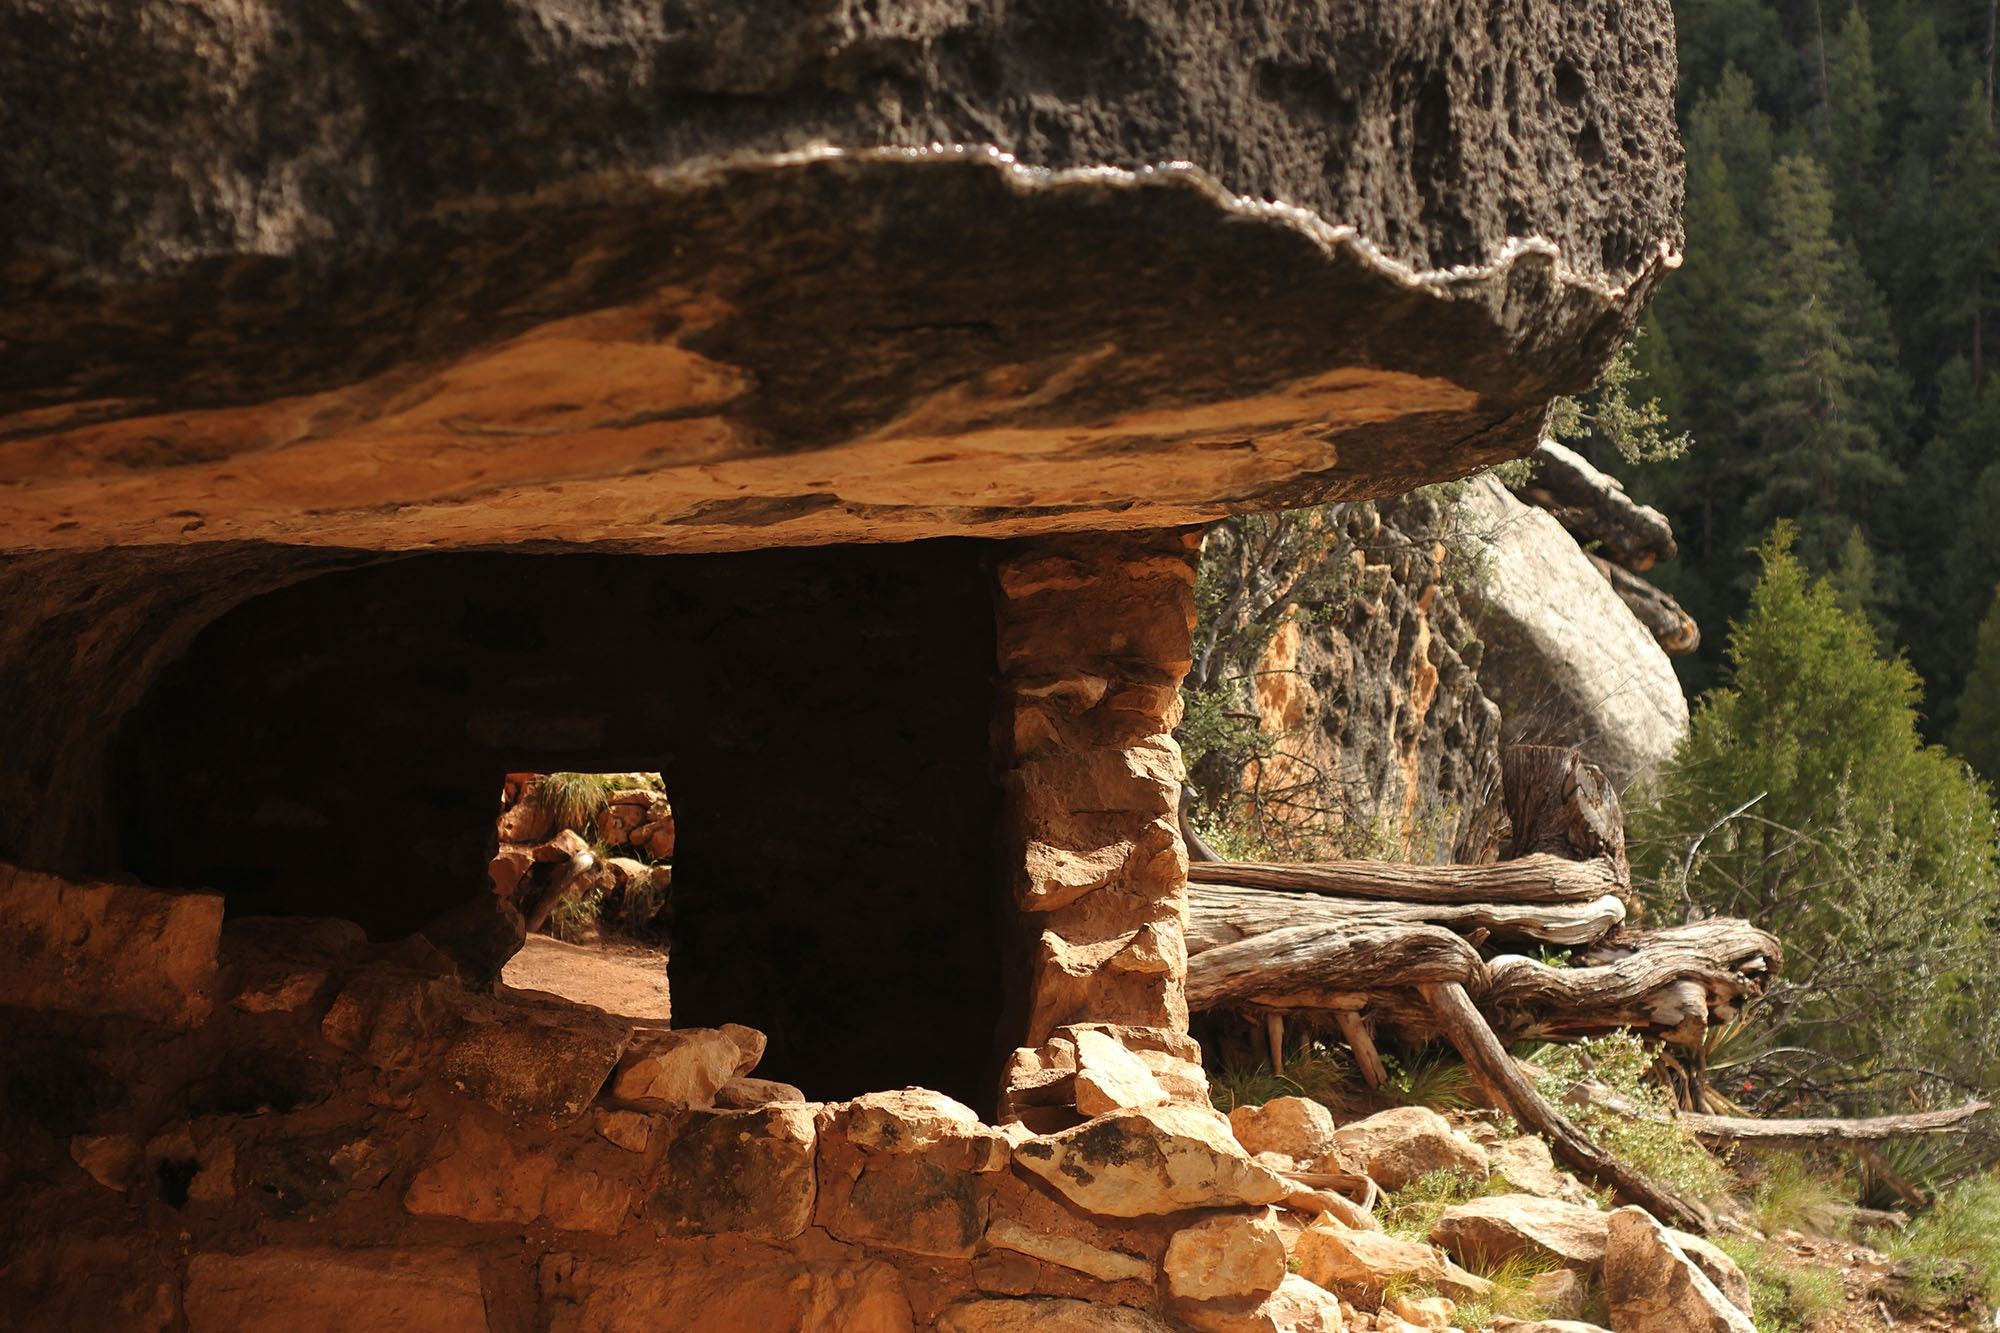 Walnut Canyon National Monument is one of the few protected pueblo sites where visitors are still allowed to enter the ruins and peer through their windows.